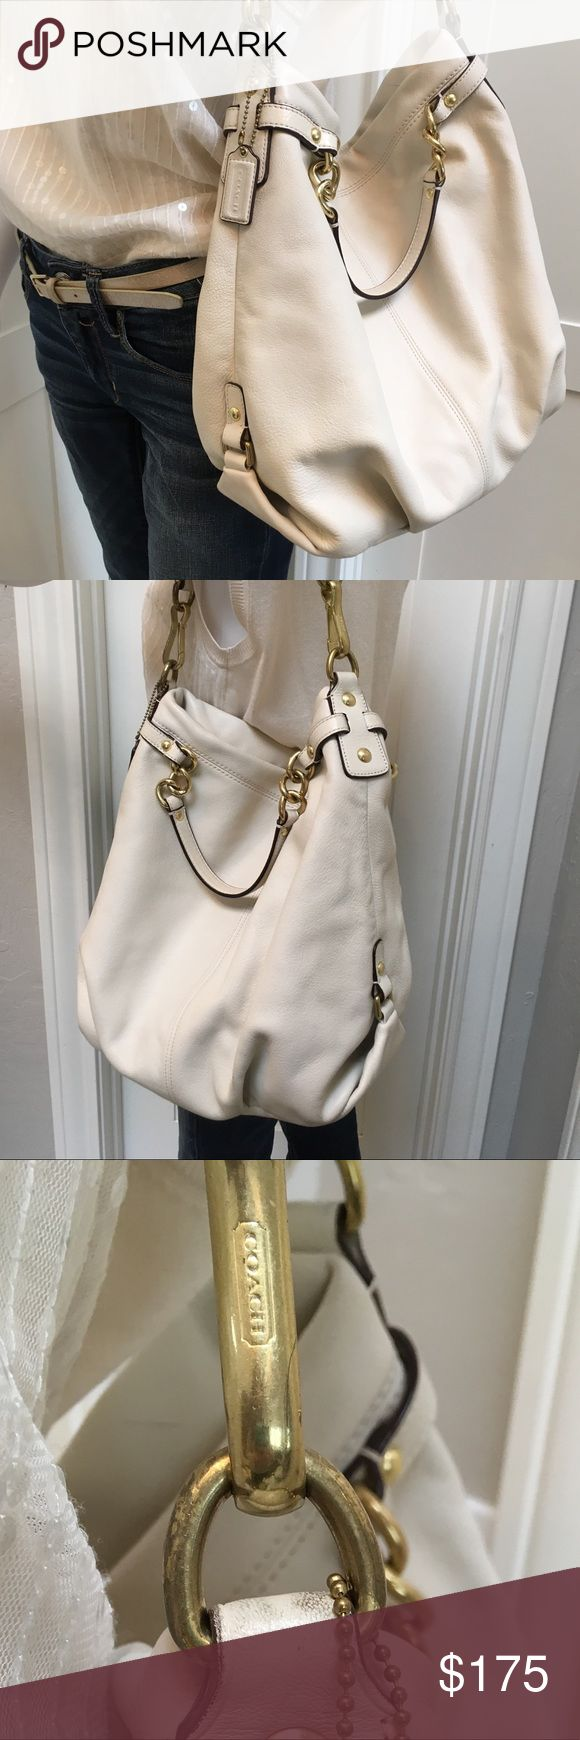 Coach White Leather Shoulder Bag Beautiful neutral bag. Coordinates well with spring summer and winter whites. Well cared for with some mild signs of wear. Please see pics carefully and ask questions. Thank you for looking! 😘  BTW - This is carefully stored, but I no longer have the dust bag :(. Coach Bags